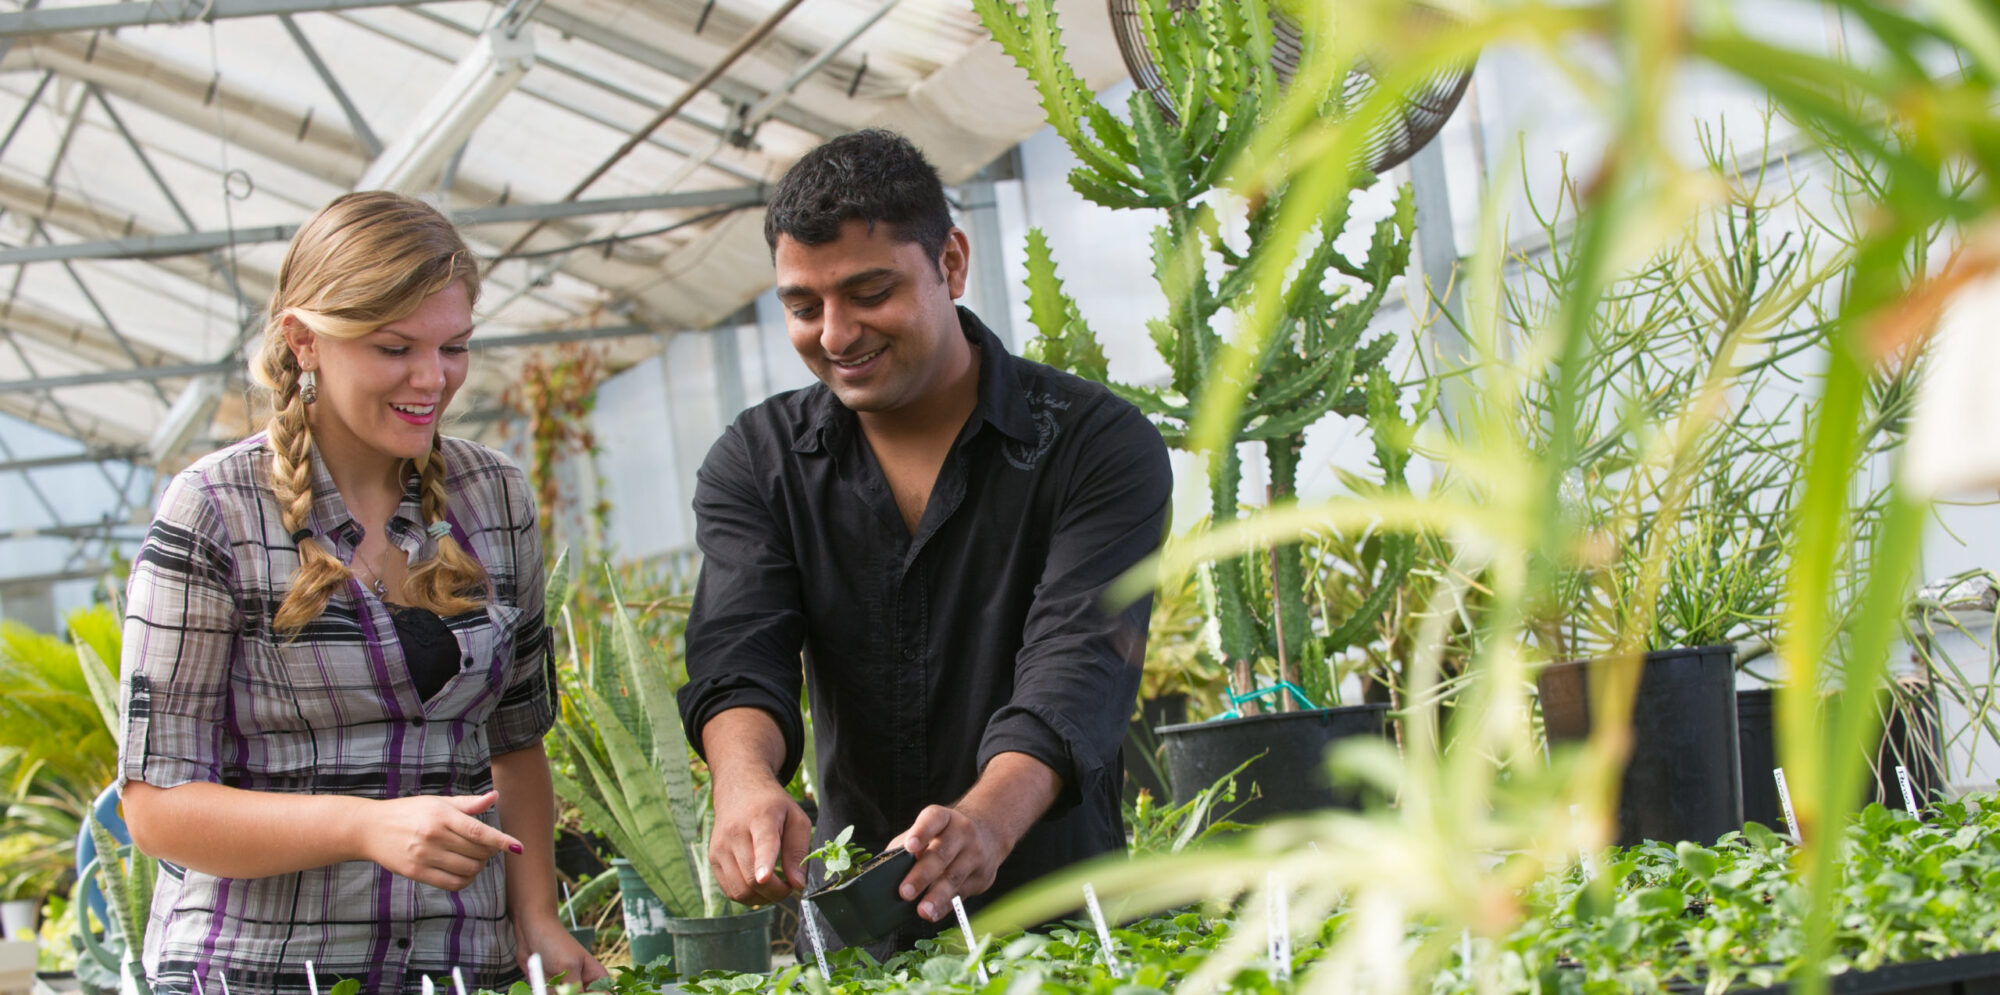 Female and male student working with plants in greenhouse.